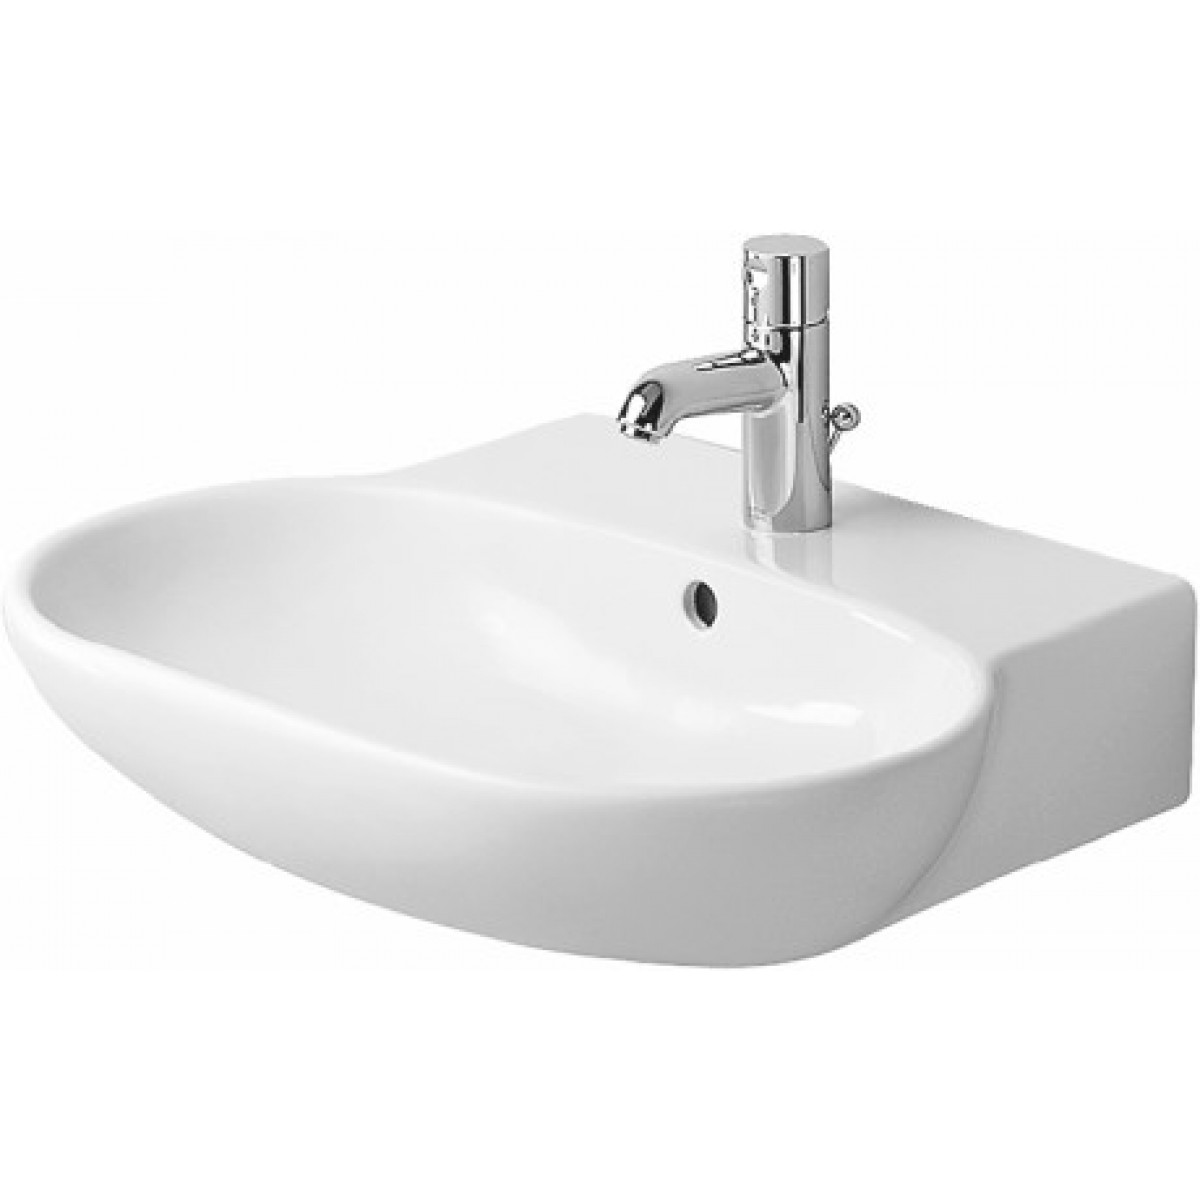 Duravit | Foster | 0419600000 | Wall Mounted Basin